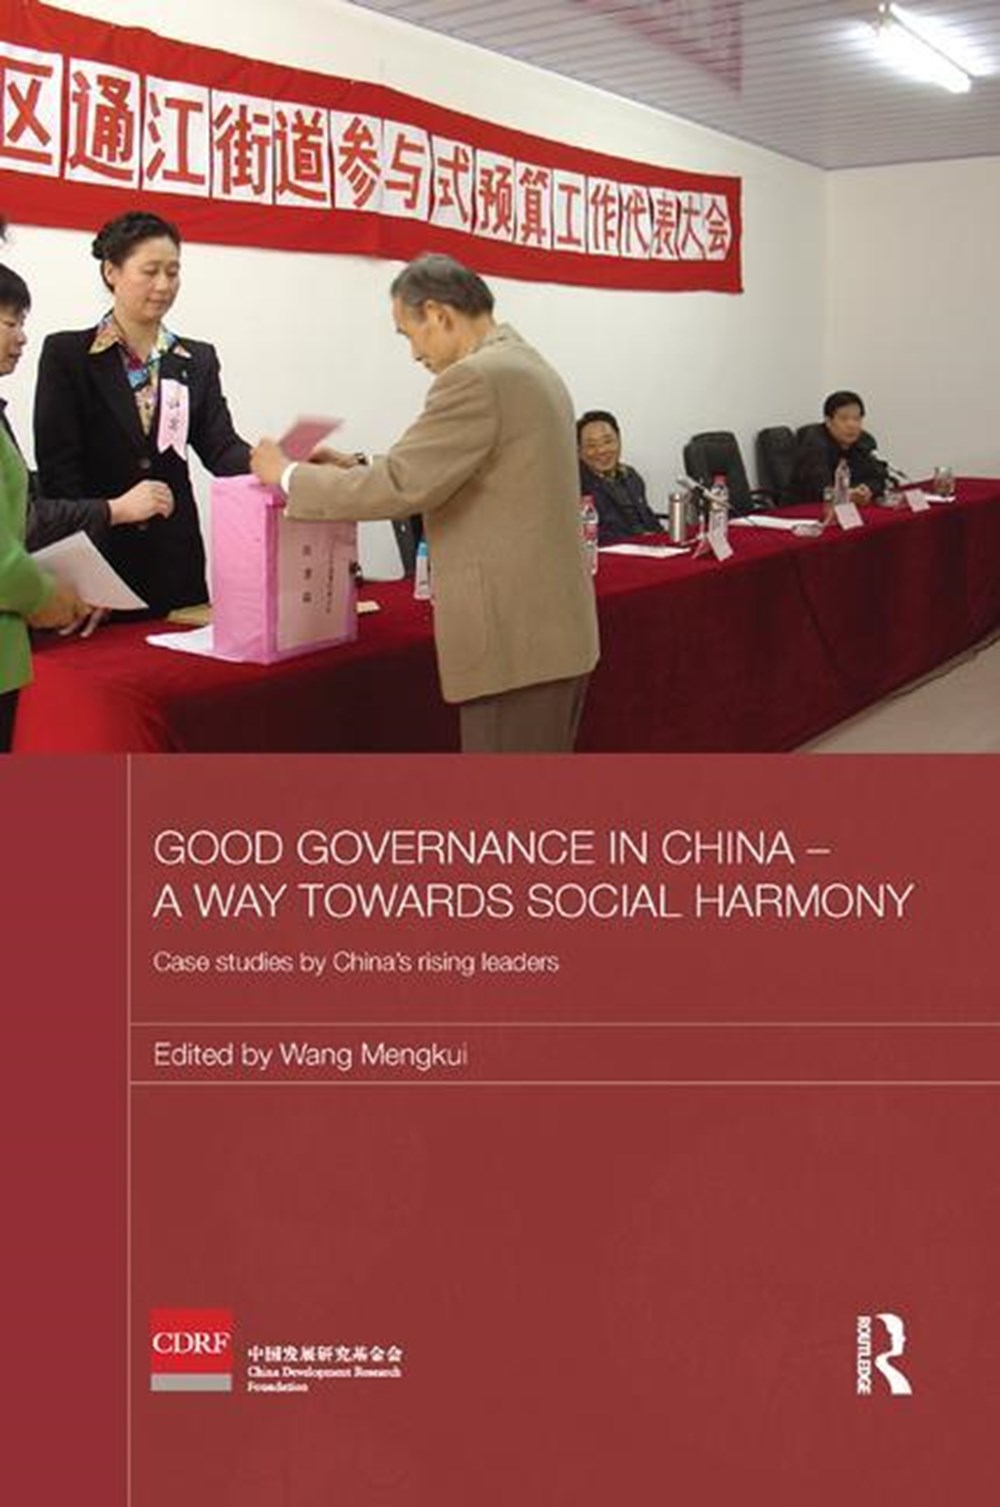 Good Governance in China - A Way Towards Social Harmony Case Studies by China's Rising Leaders